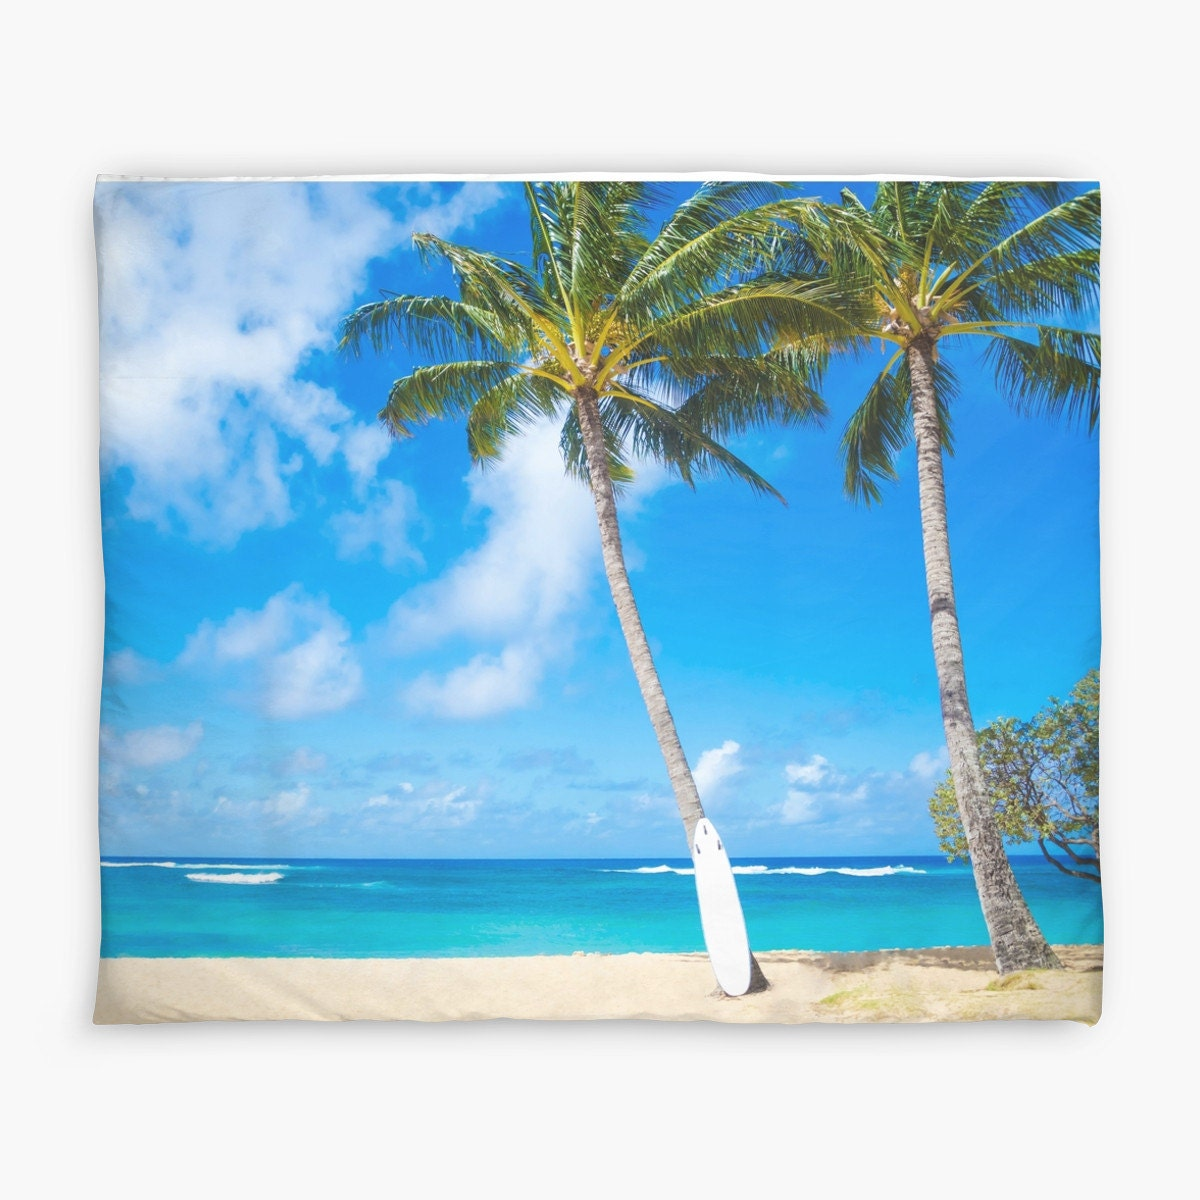 Palm duvet cover with palm tree and surfboard in hawaii water for Parure de lit couette 240x260